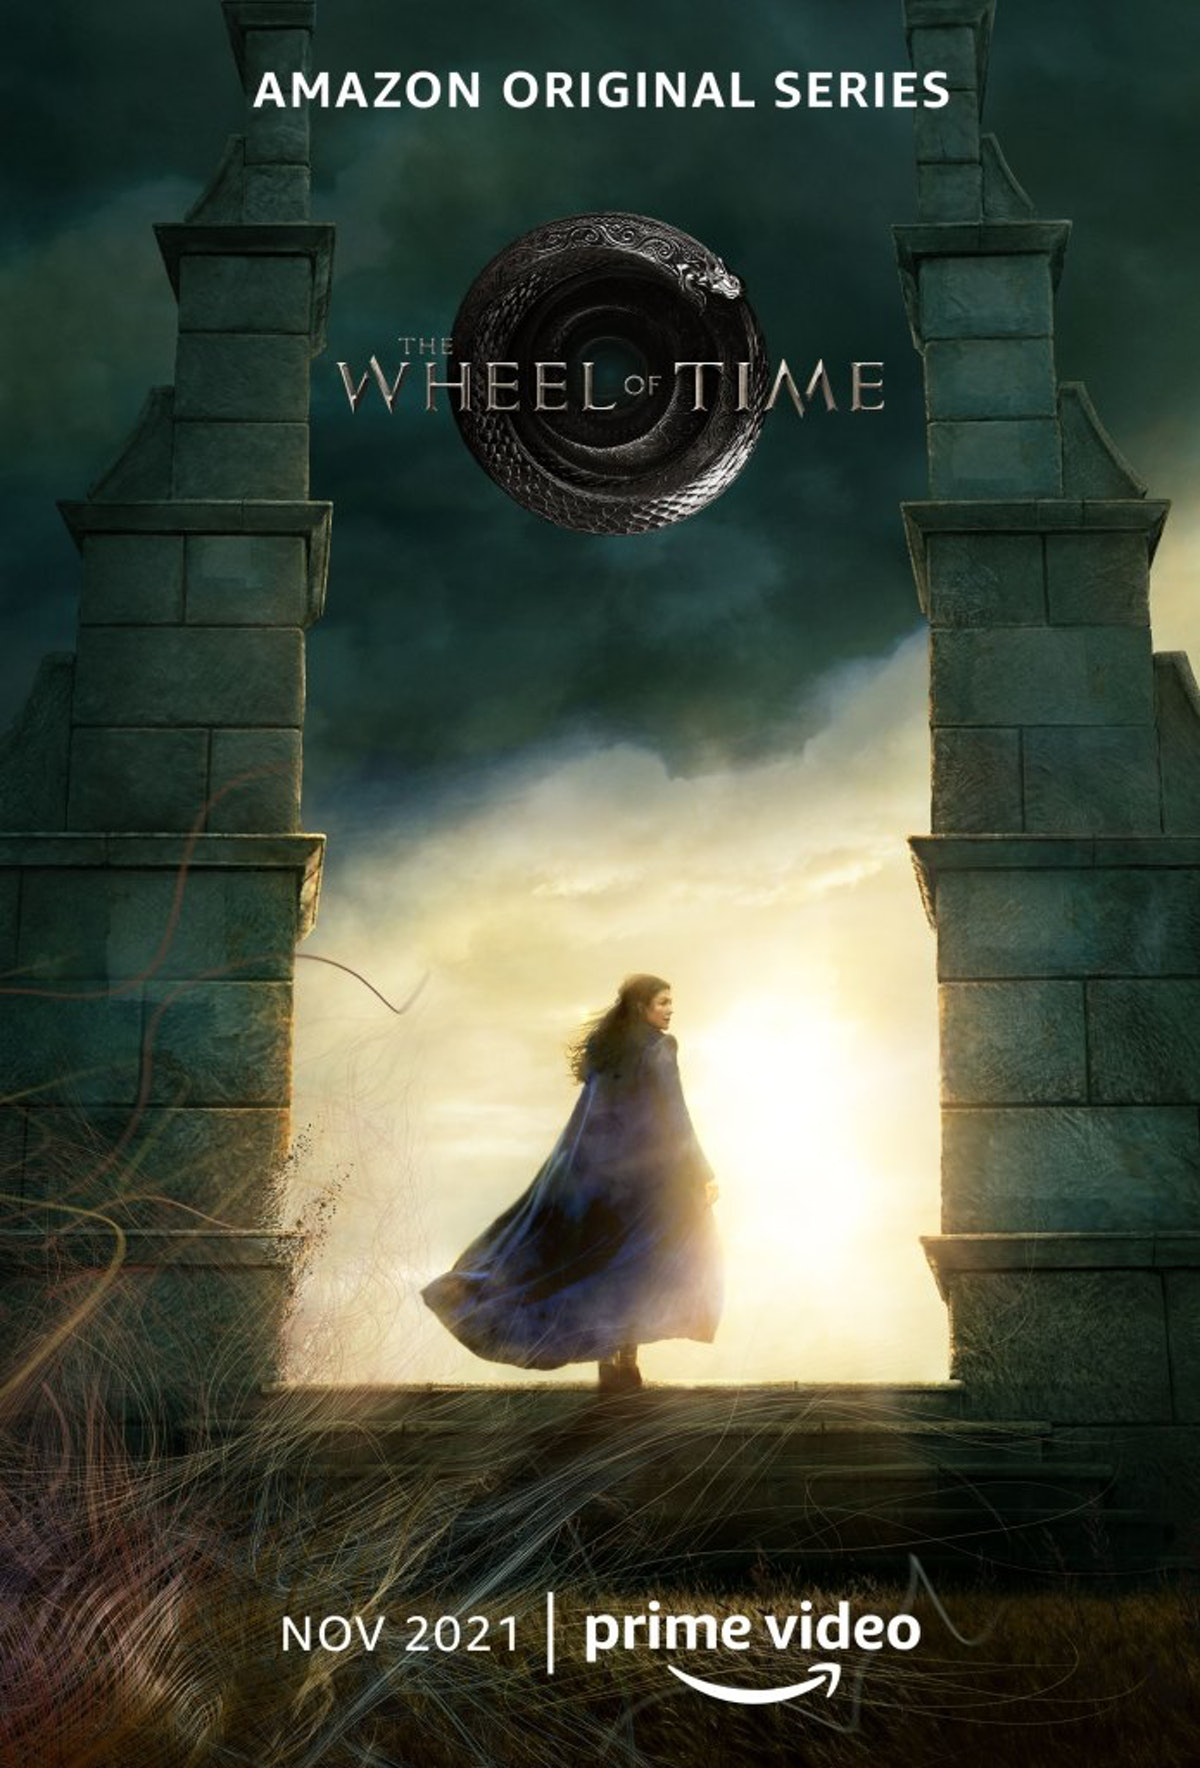 The official poster for The Wheel of Time